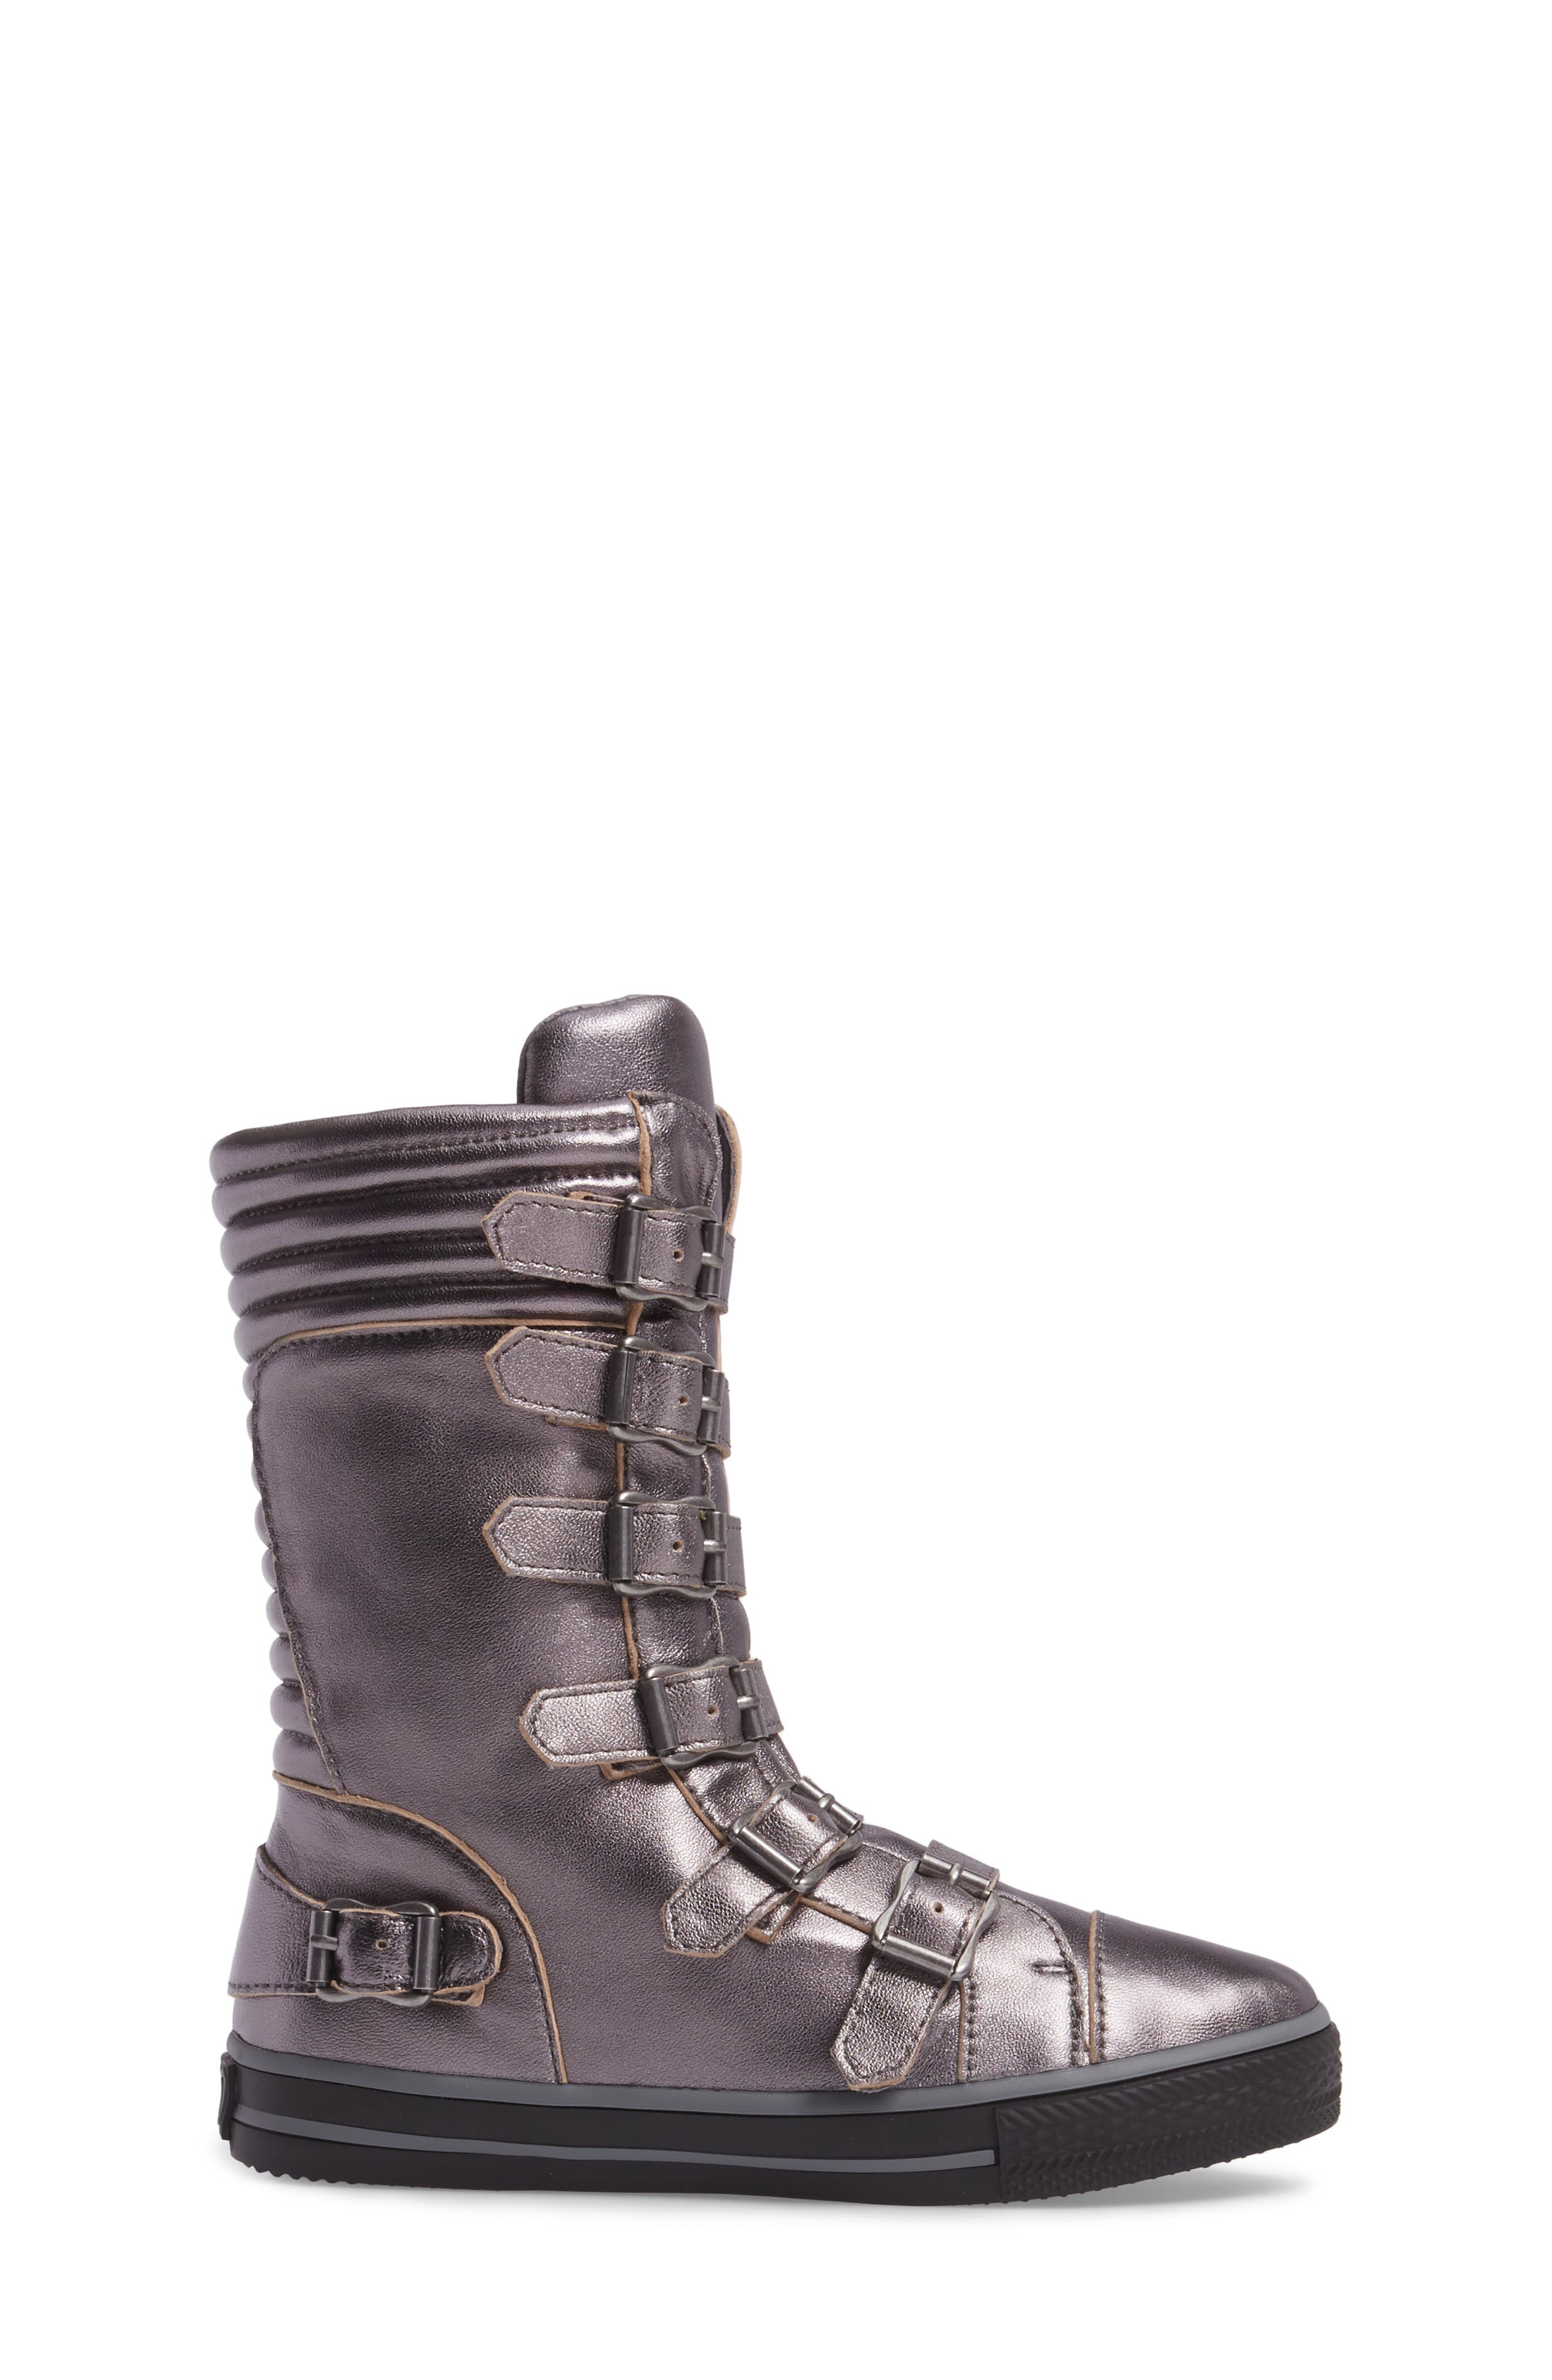 Alternate Image 3  - Ash Vava Natalie Tall Sneaker Boot (Toddler, Little Kid & Big Kid)